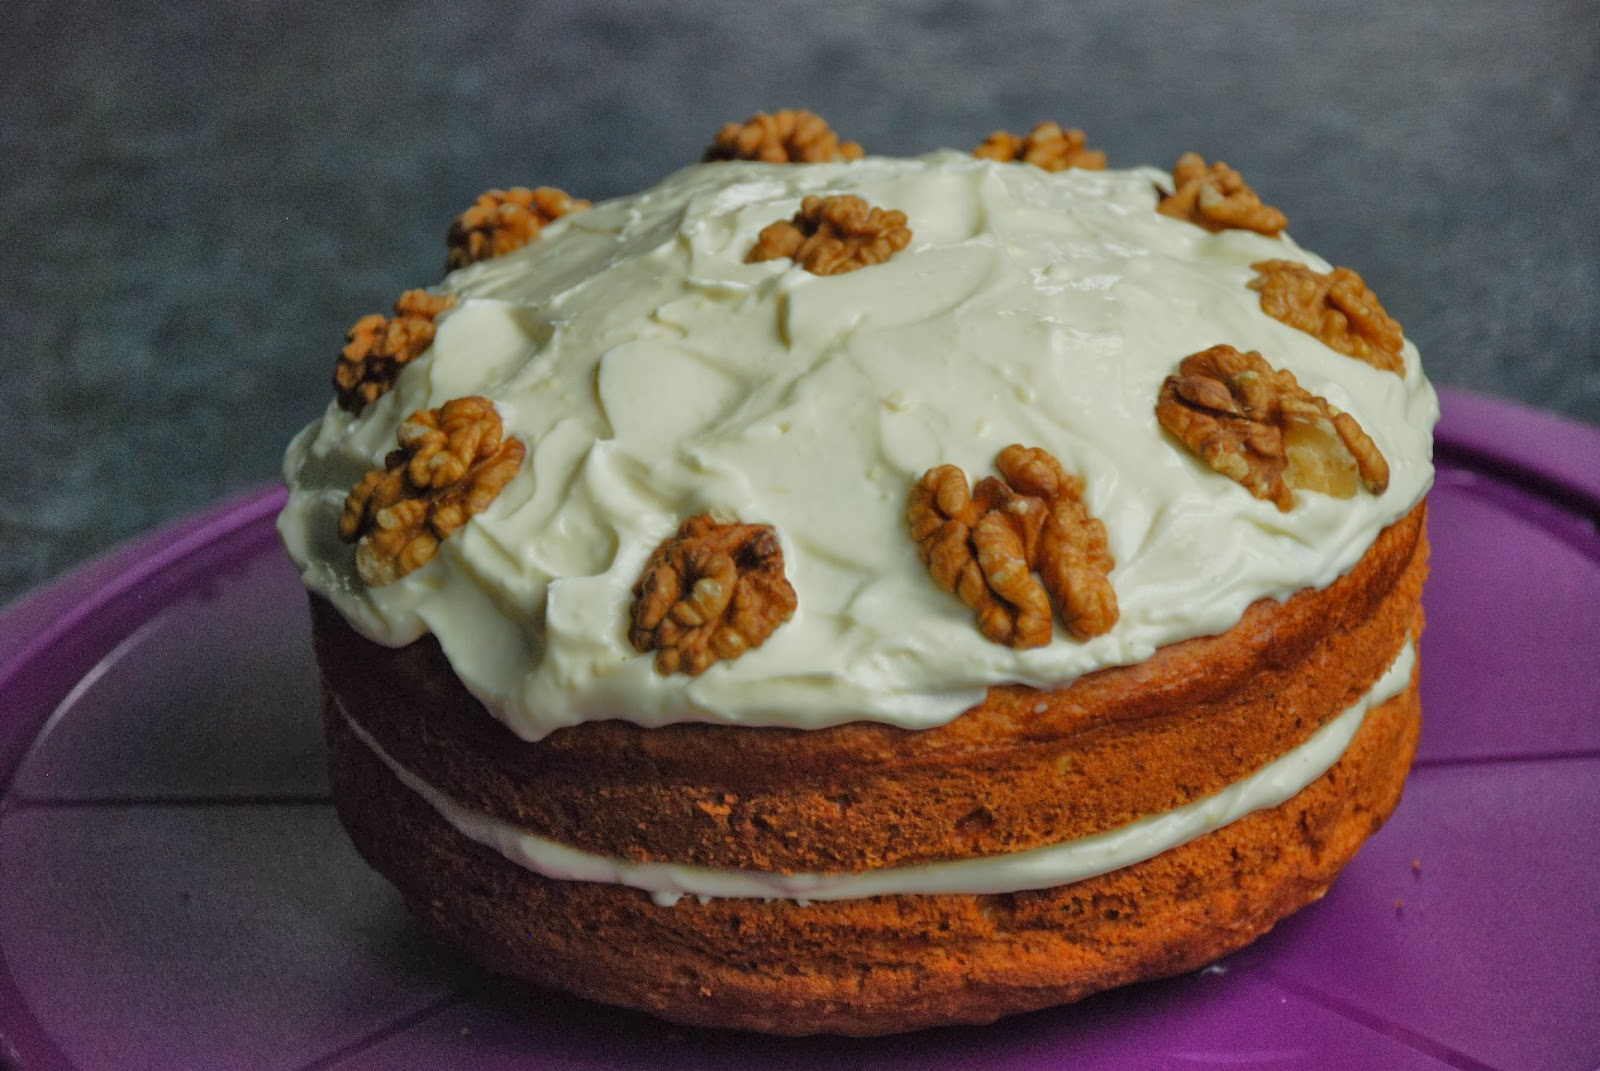 image of home made carrot and walnut cake